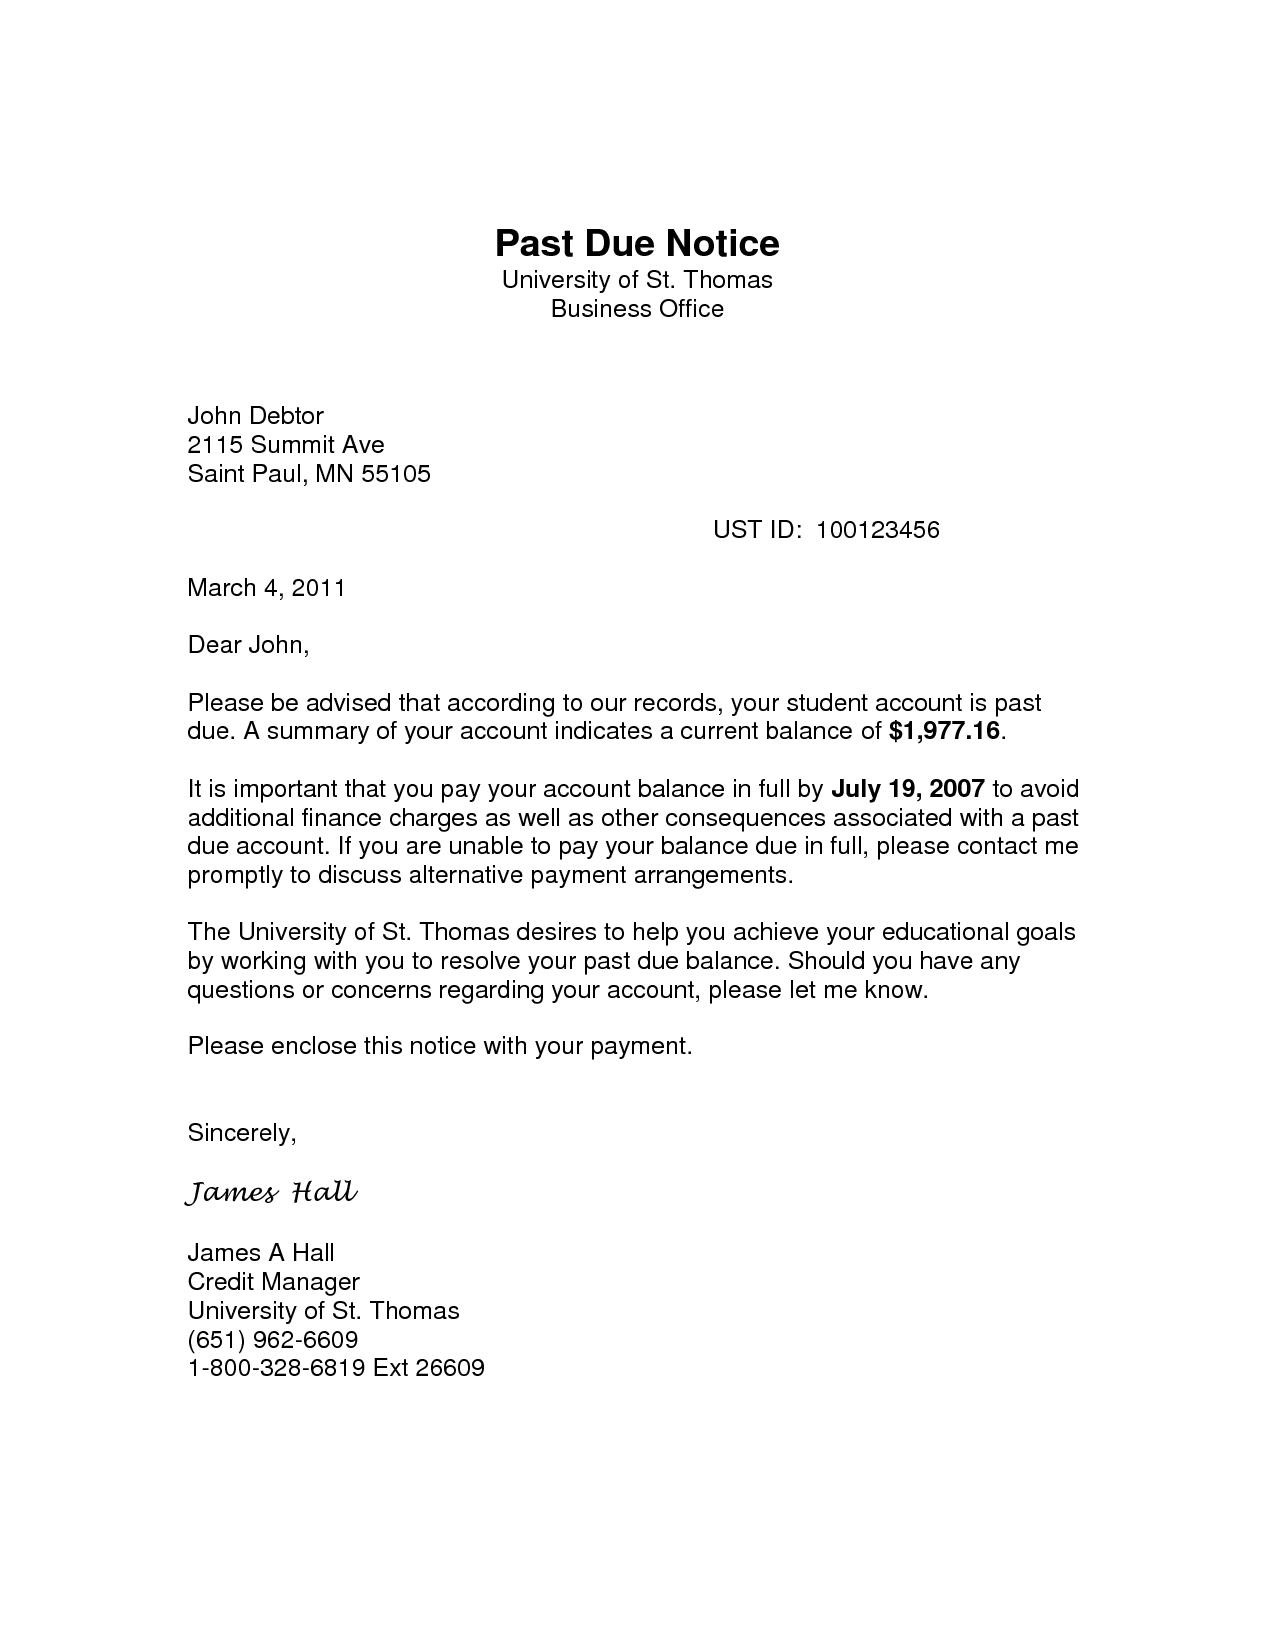 Past Due Rent Letter Template - Past Due Notice Acurnamedia